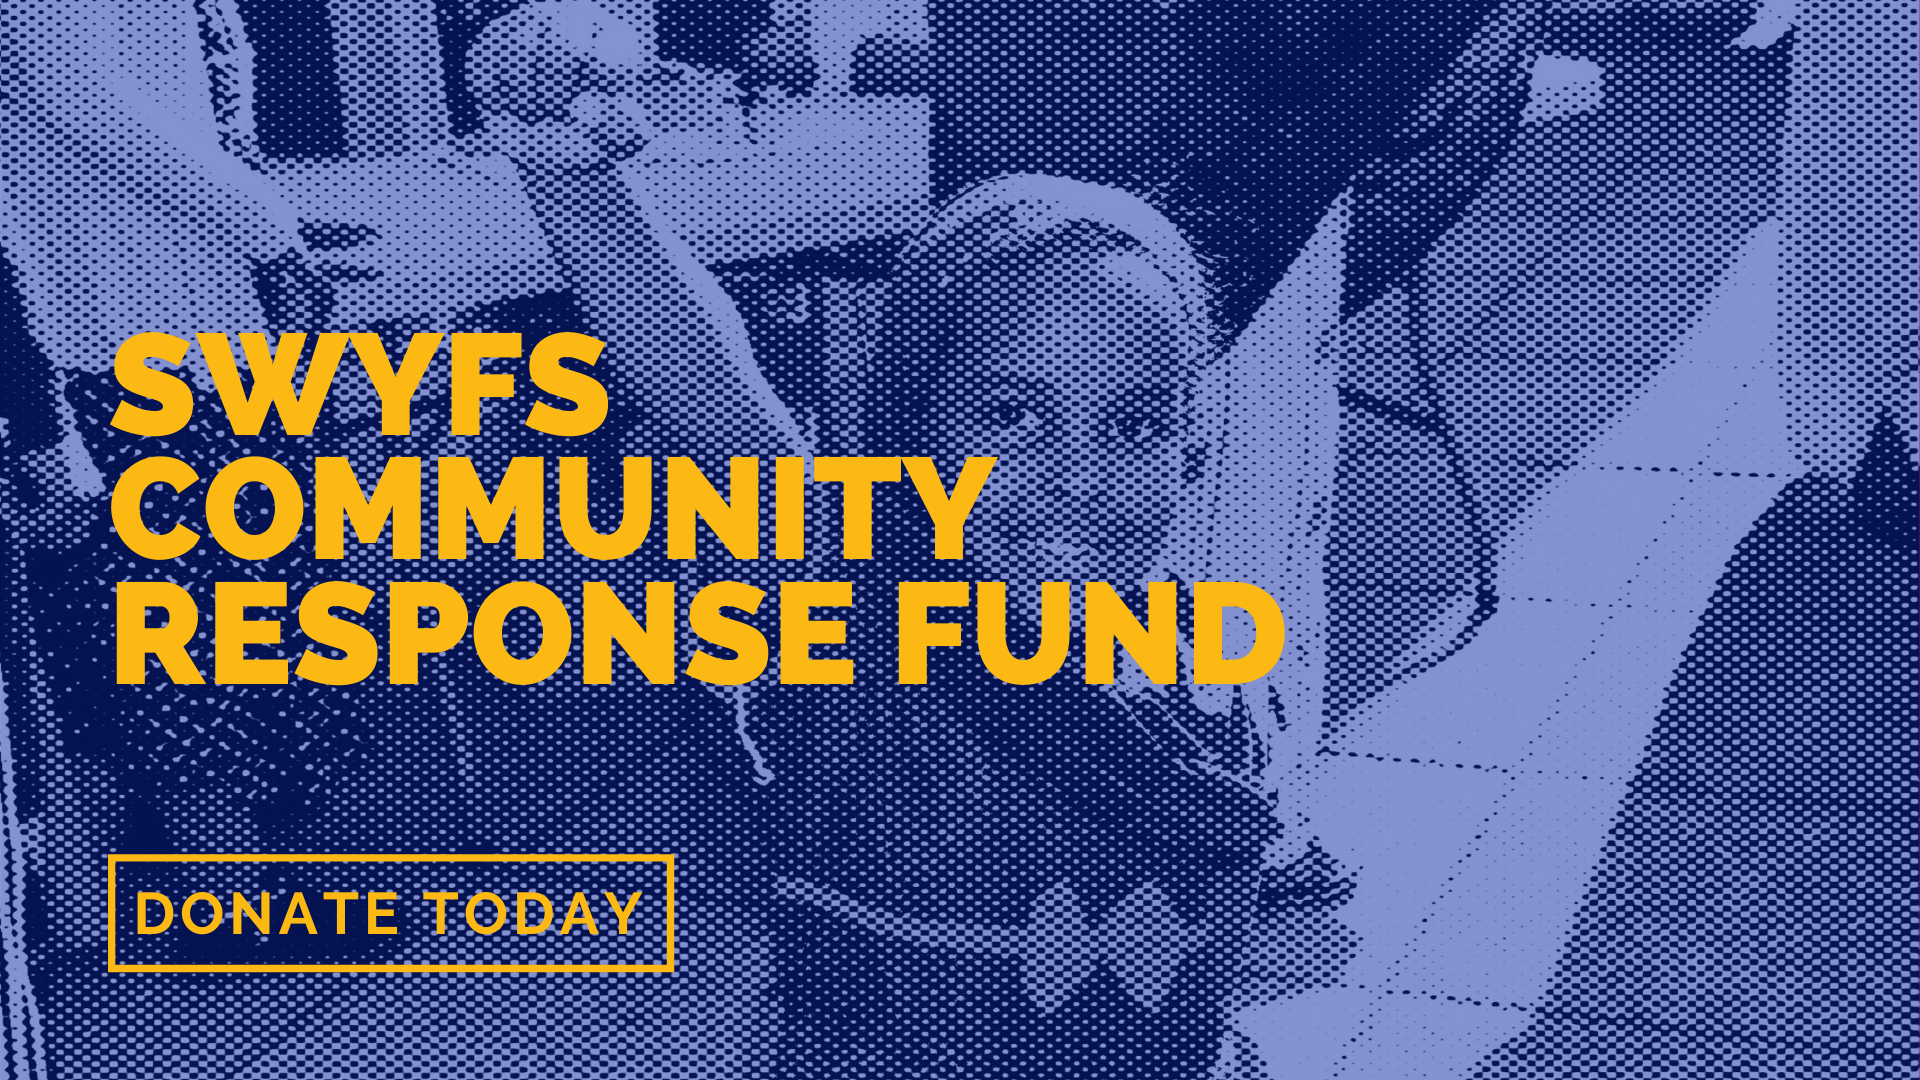 Donate today to SWYFS Community Response Fund